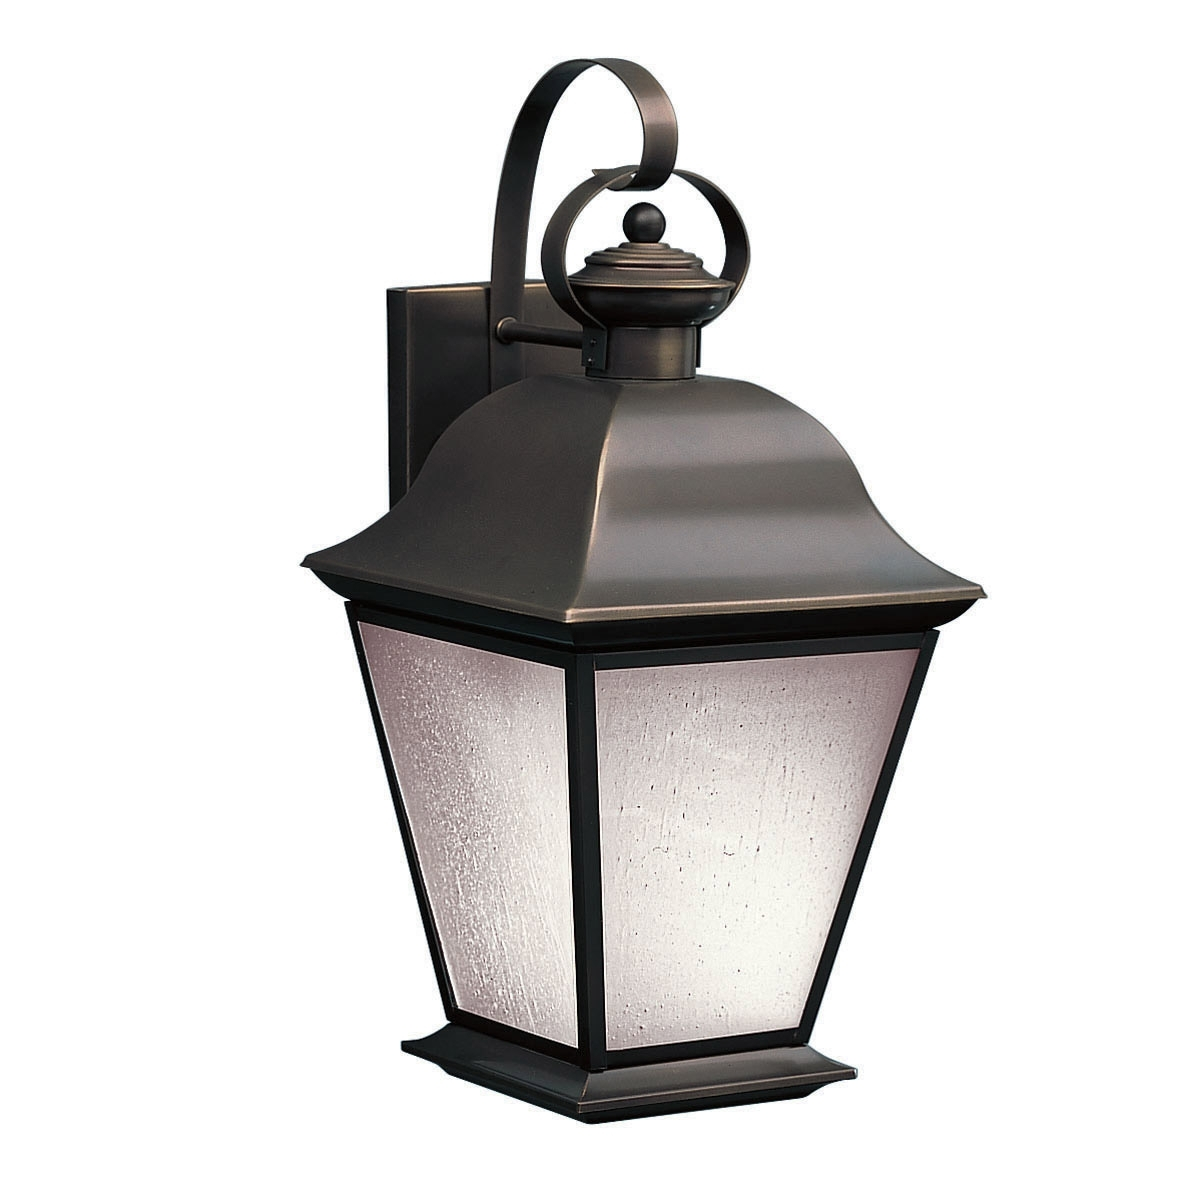 Best And Newest Light : Simple Uniques Minimalist Black Metal Hard Quality Outdoor Intended For Outdoor Wall Mount Led Light Fixtures (Gallery 6 of 20)